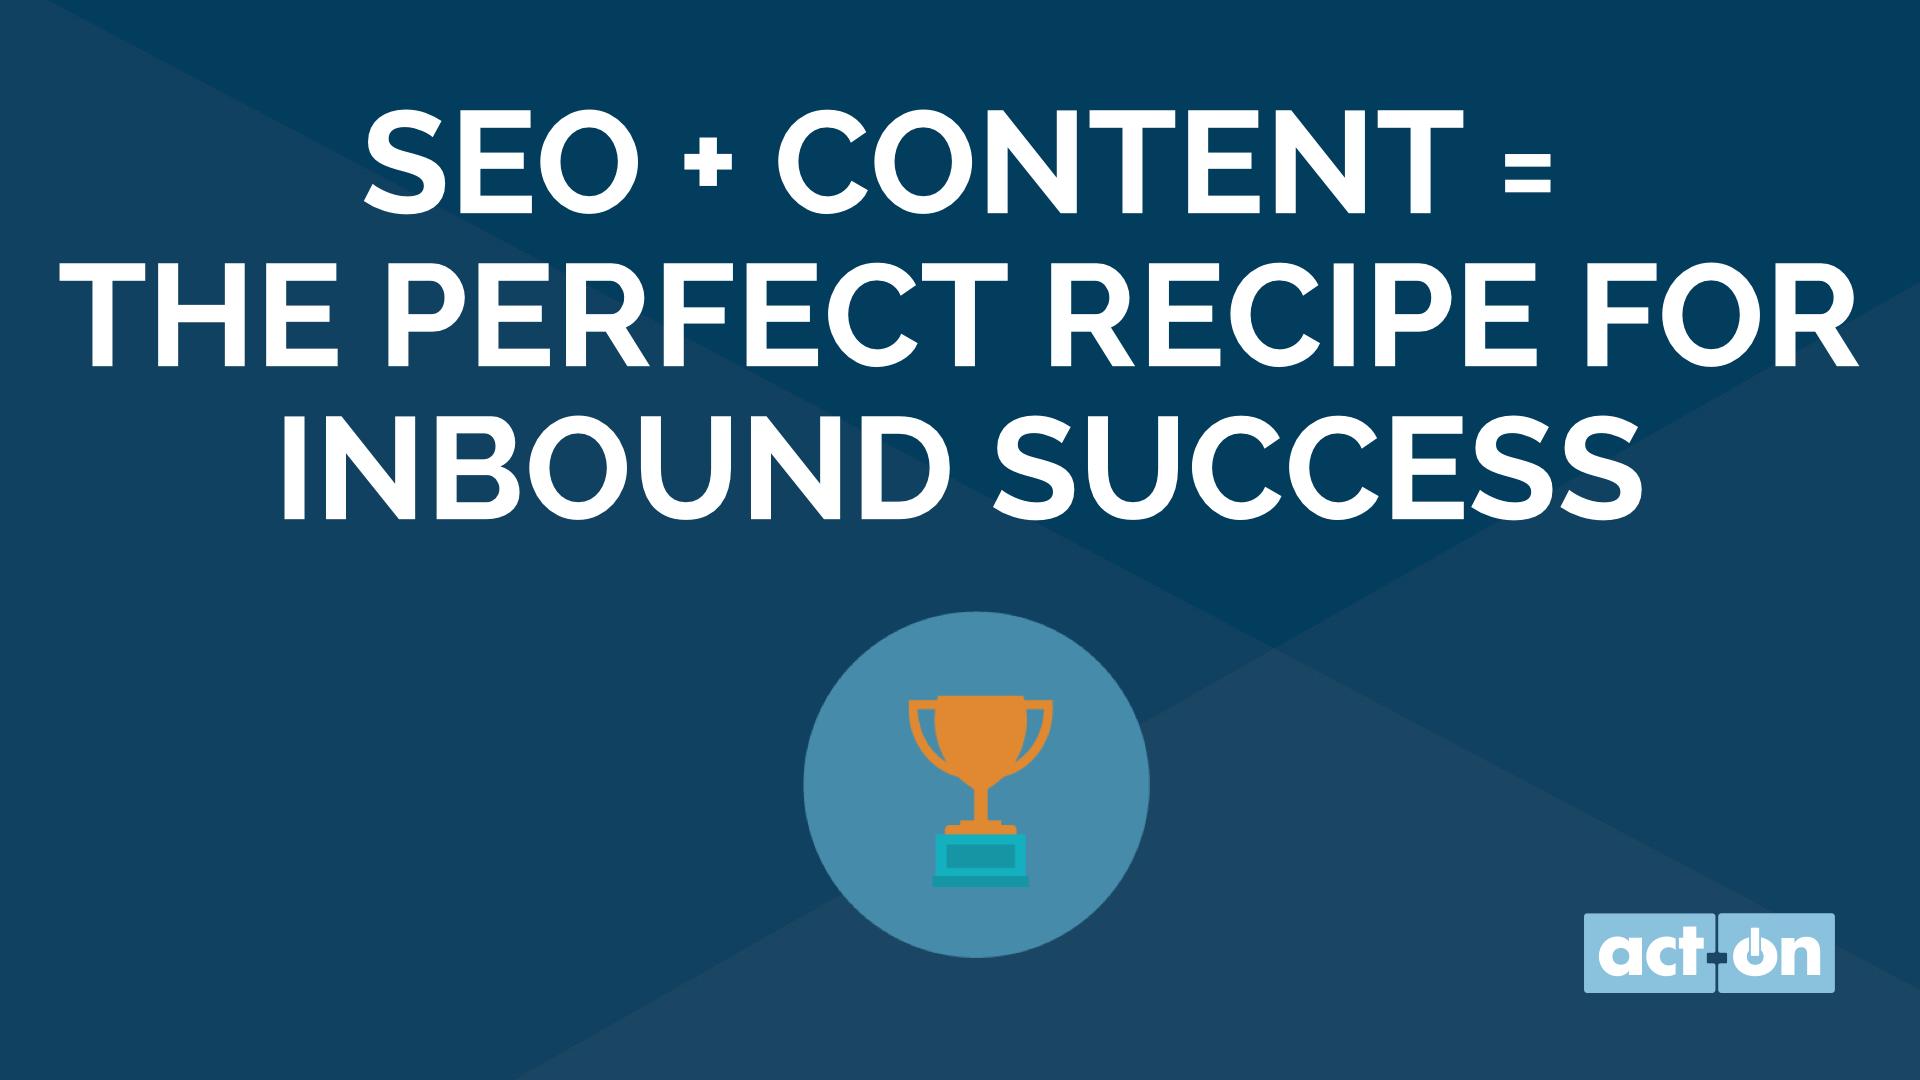 SEO + Content = The Perfect Recipe for Inbound Success